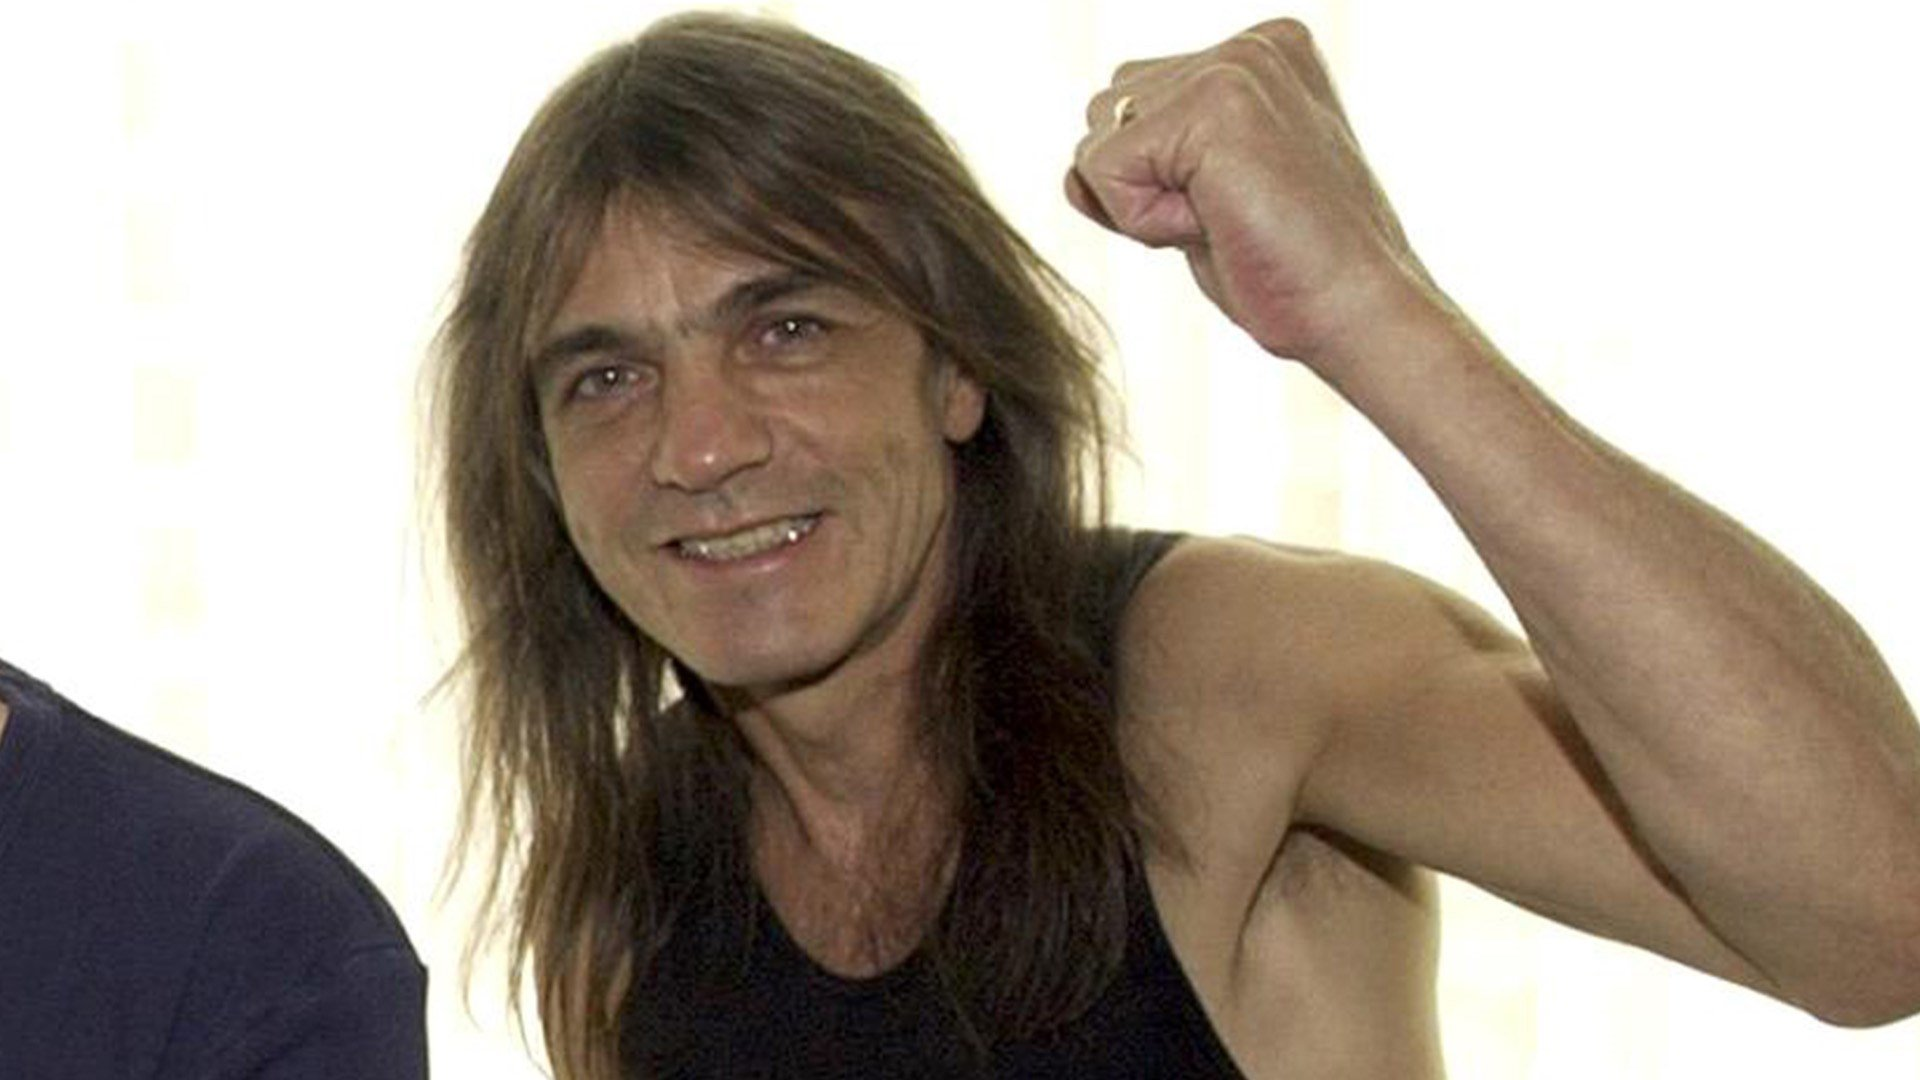 AC/DC guitarist Malcolm Young at a photoshoot in 2003.